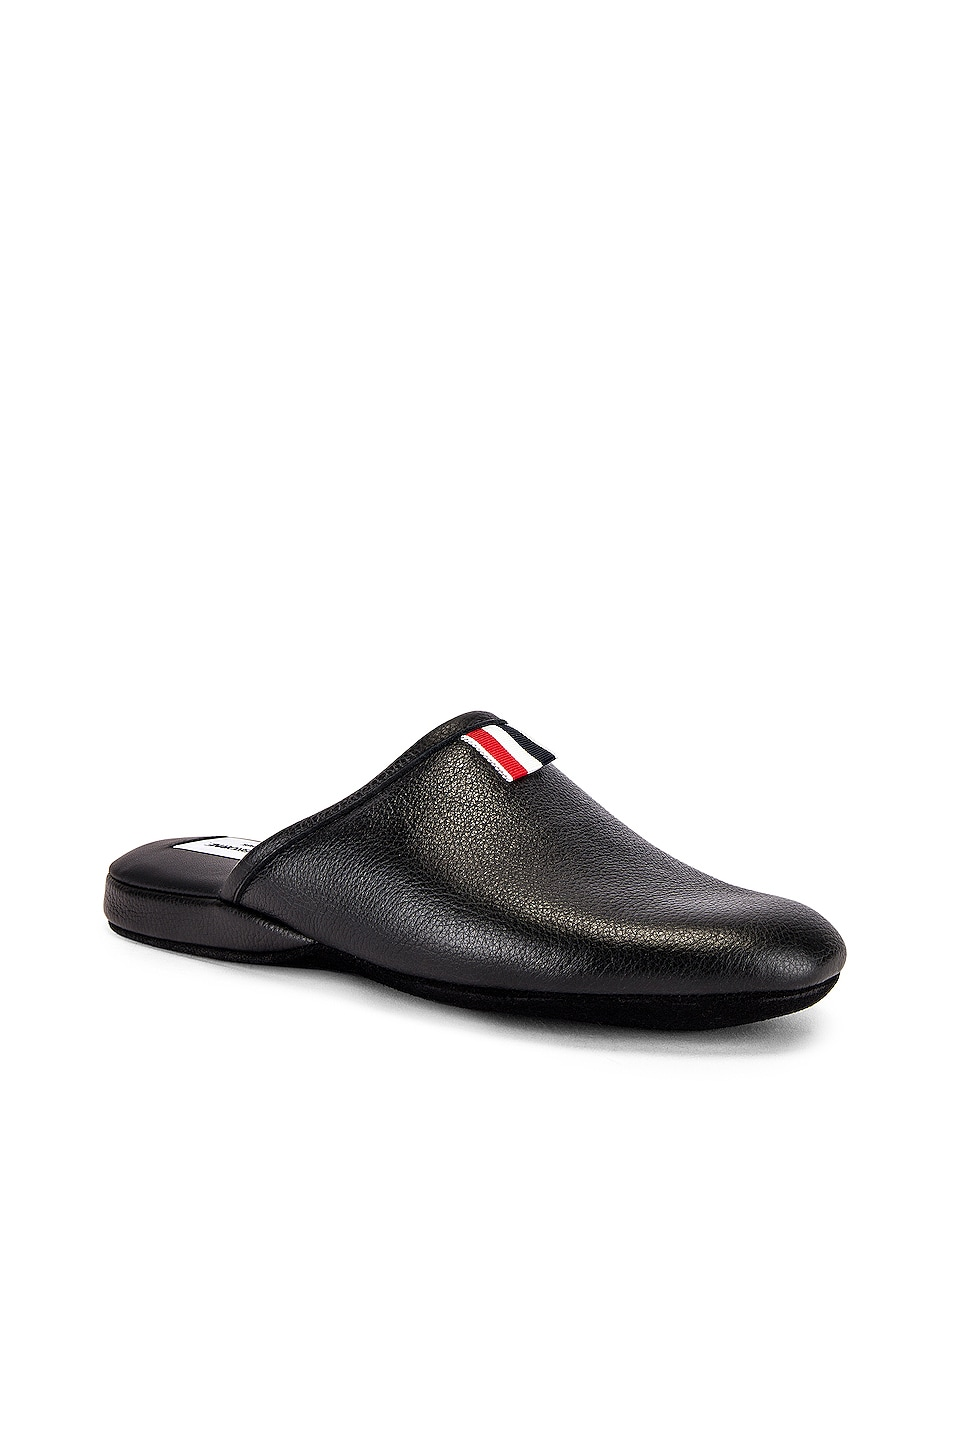 Image 1 of Thom Browne Grossgrain Slipper in Black